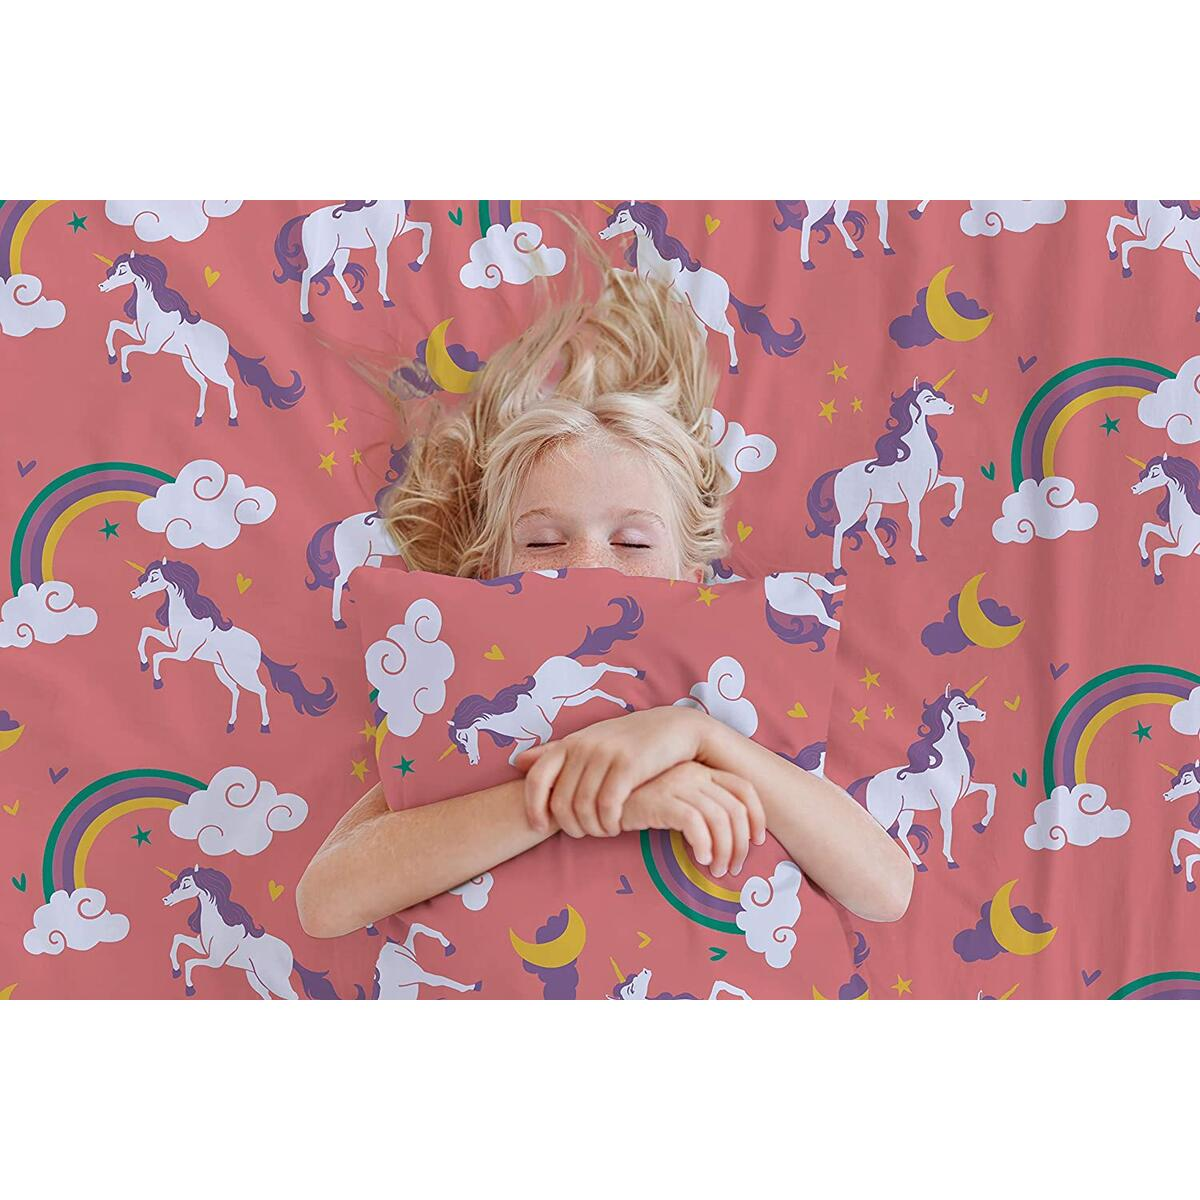 Lunar Unicorn Twin Sized Bed Sheets